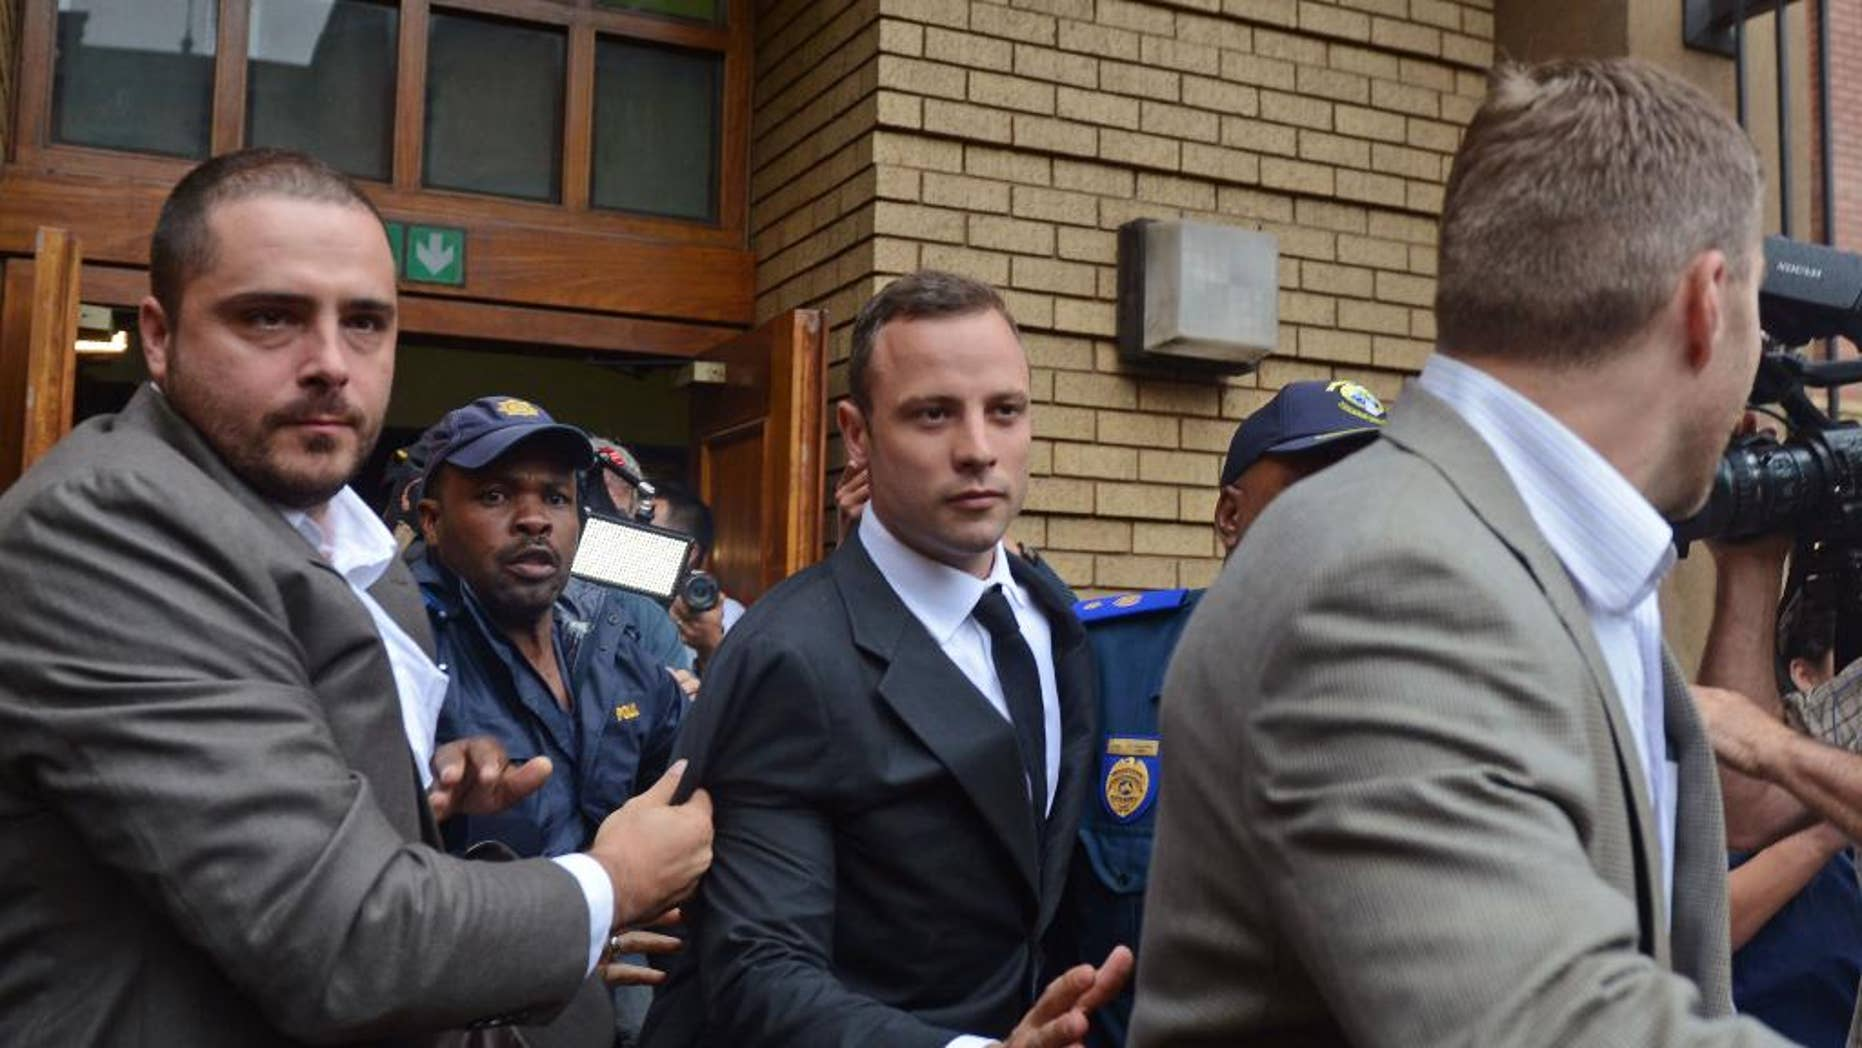 Oscar Pistorius, center, is escorted out of the high court after the first day of his trial in Pretoria, South Africa, Monday, March 3, 2014. Pistorius is charged with murder with premeditation in the shooting death of girlfriend Reeva Steenkamp in the pre-dawn hours of Valentine's Day 2013. (AP Photo)